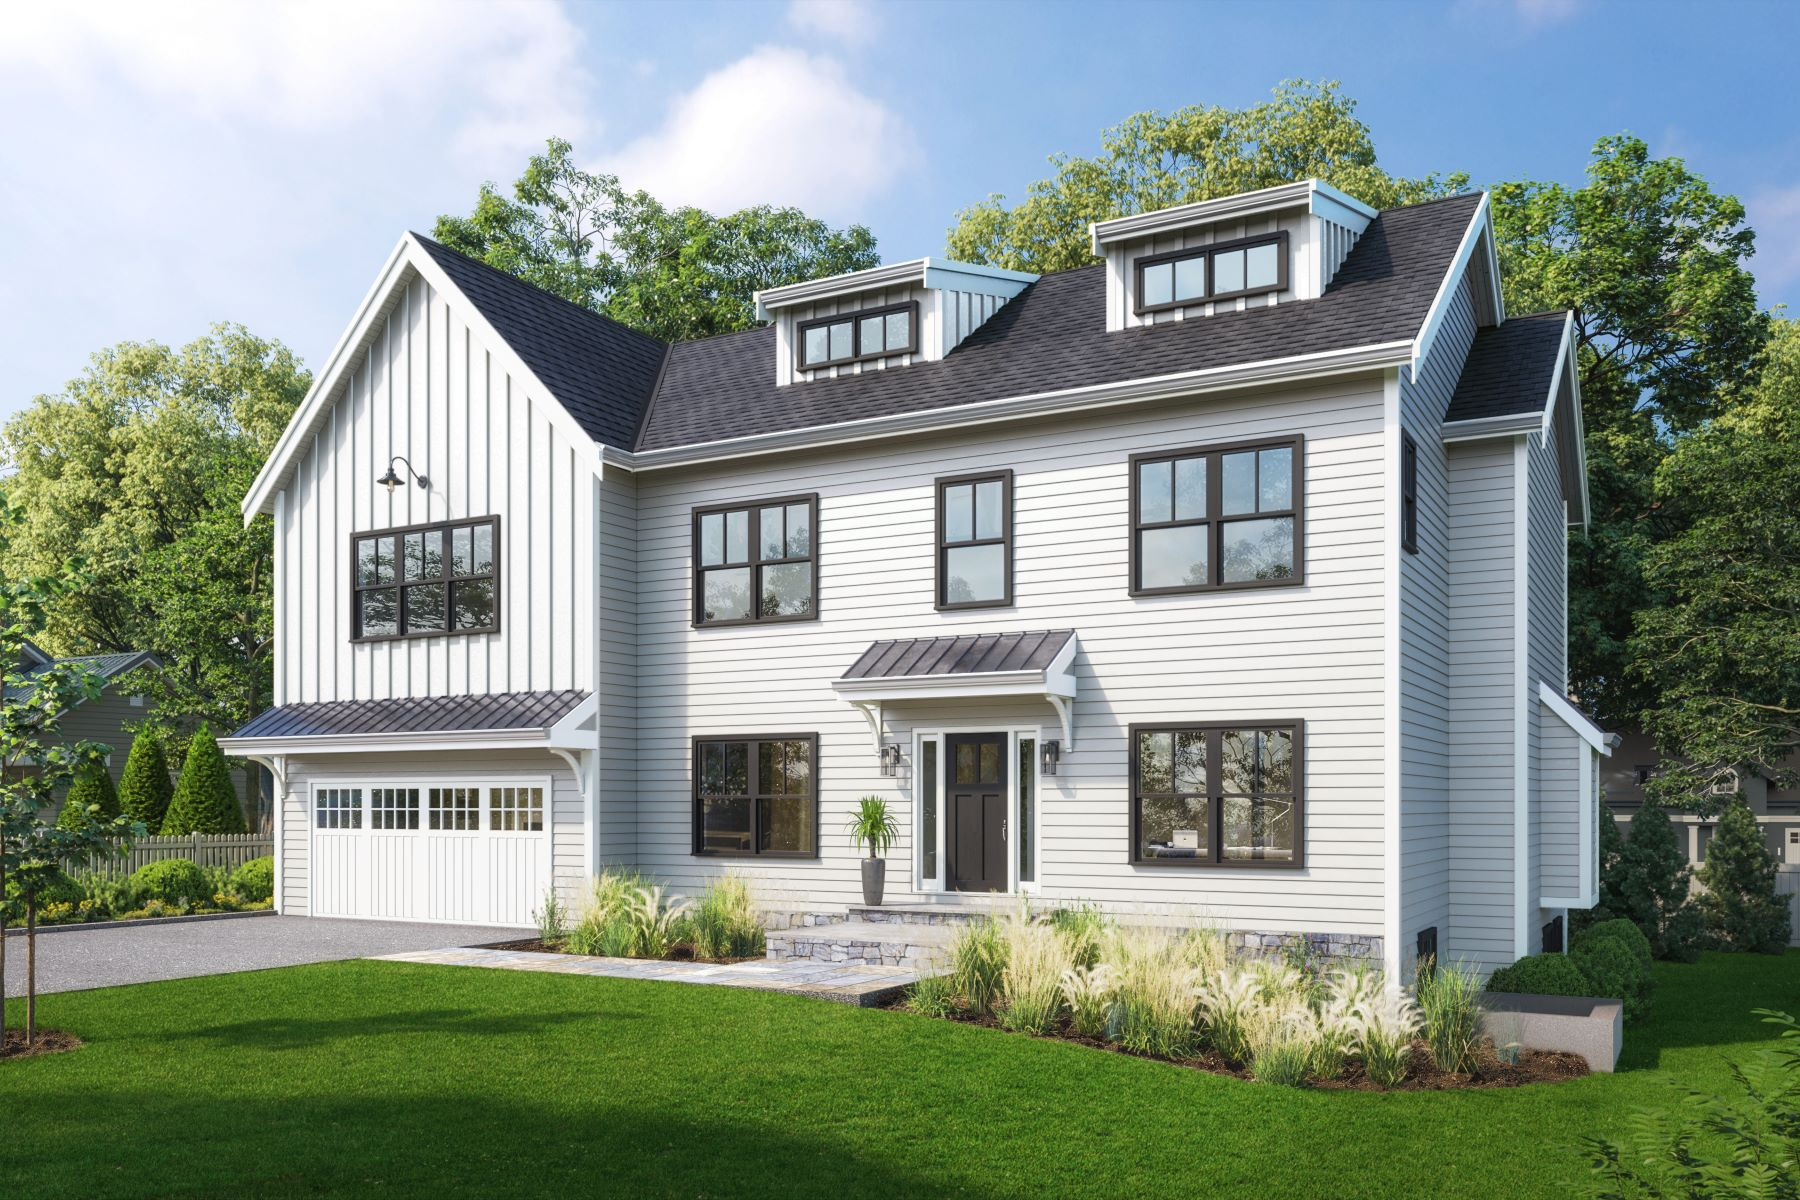 Single Family Homes for Active at New Construction in Long Lots! 17 Bauer Place Extension Westport, Connecticut 06880 United States